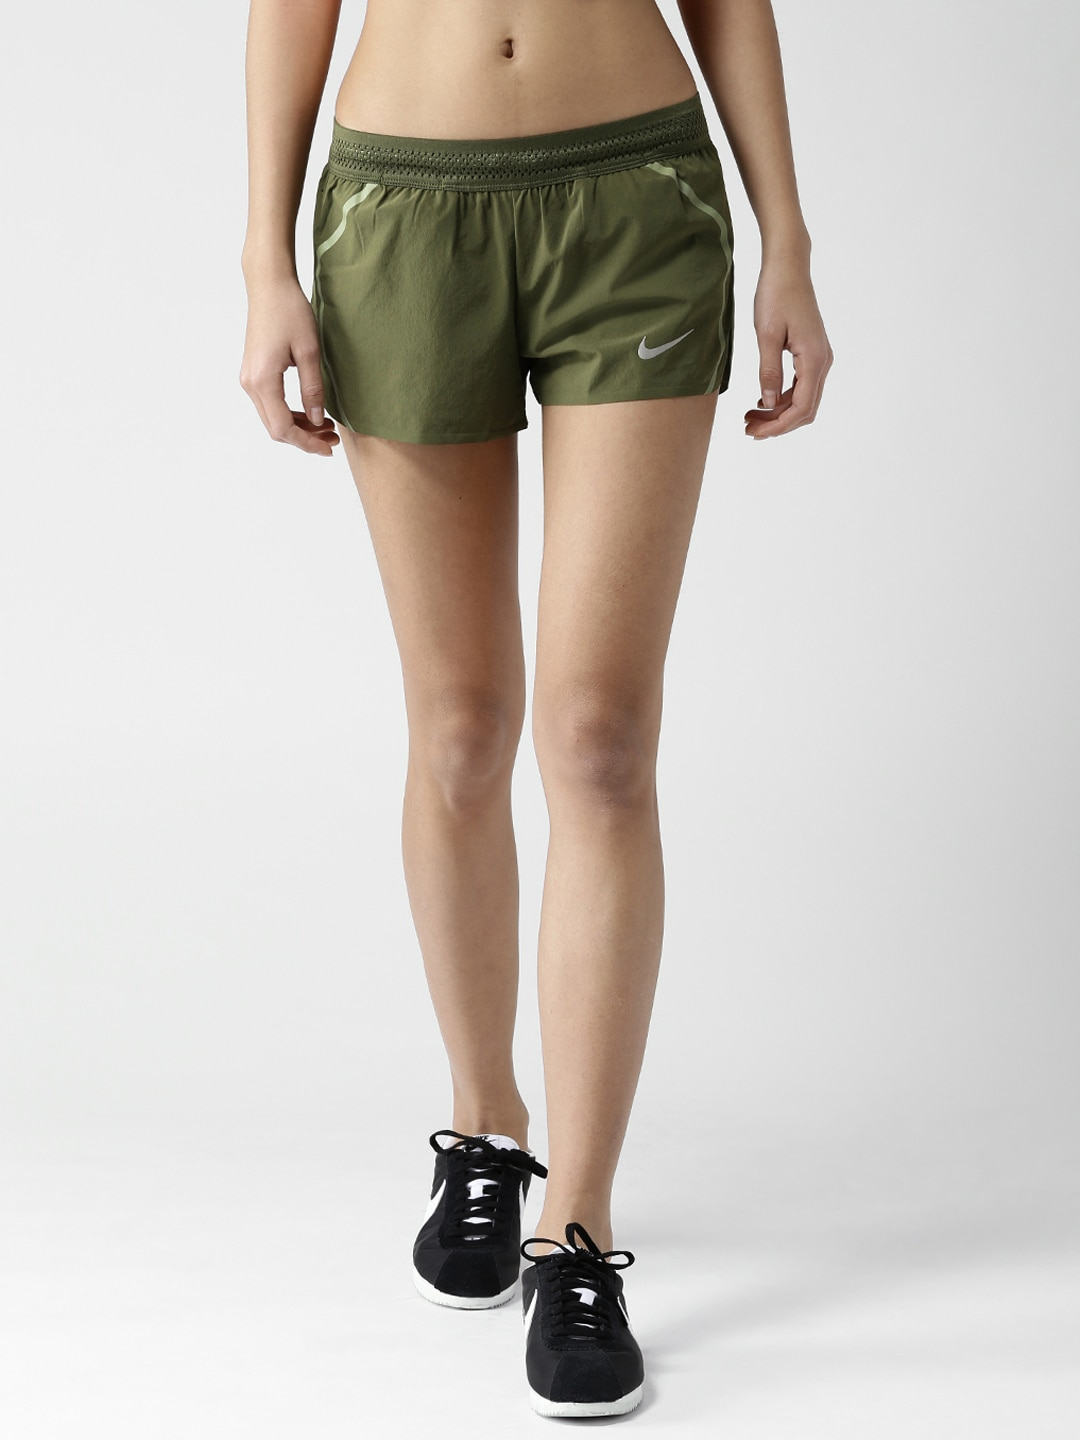 b8a23a80386ec Women Nike Shorts - Buy Women Nike Shorts online in India